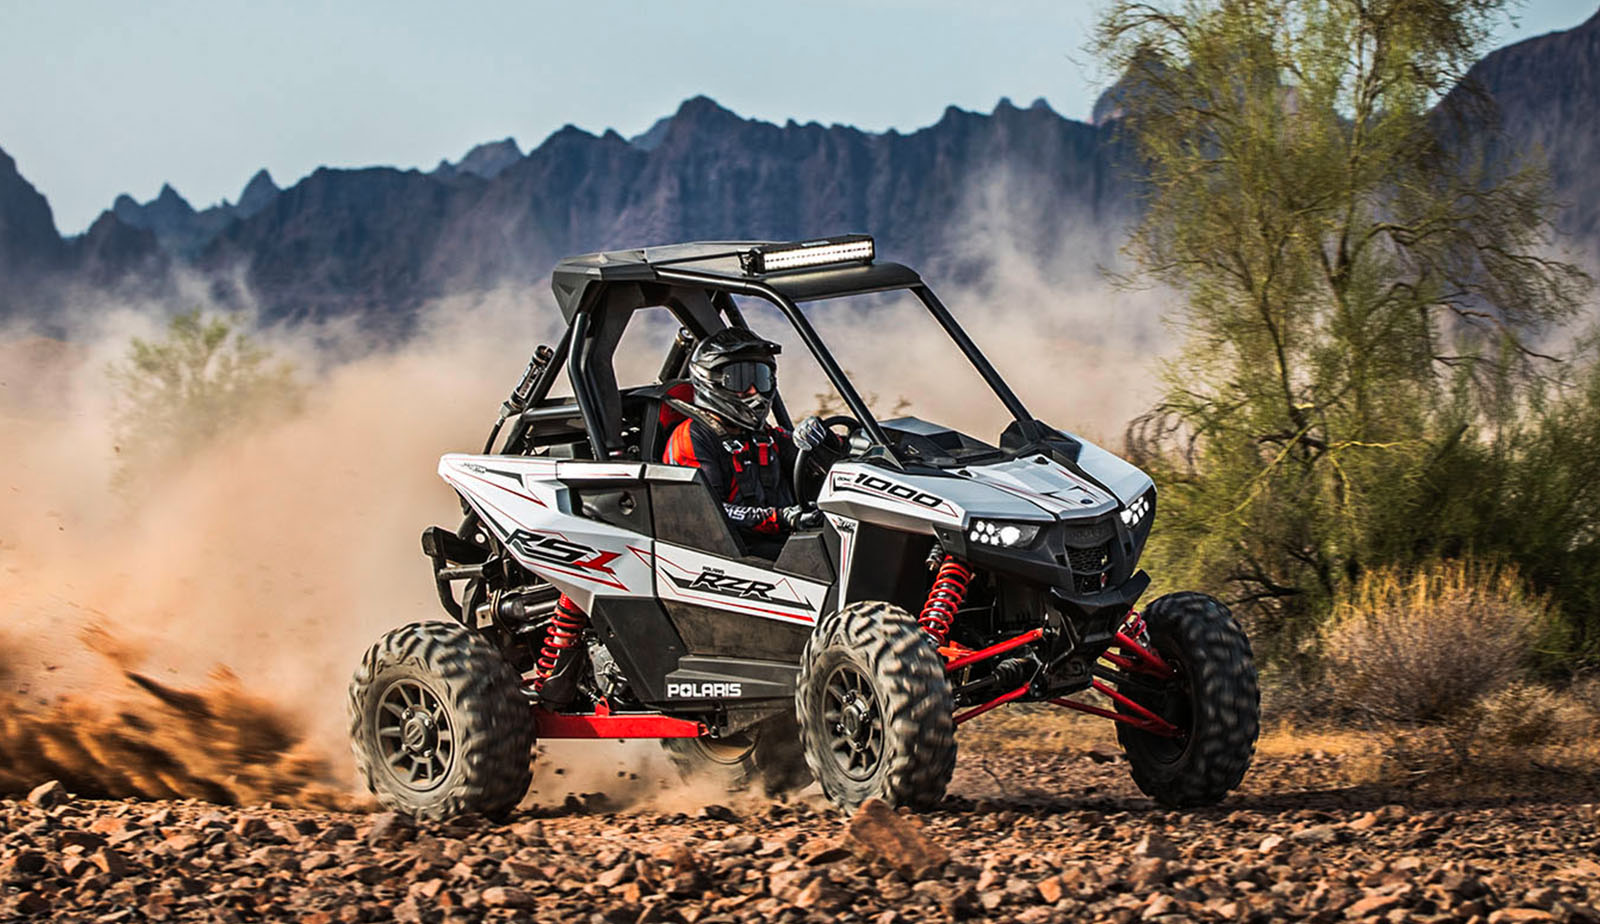 Piloto conduciendo Polaris RZR RS1 sobre pista off-road